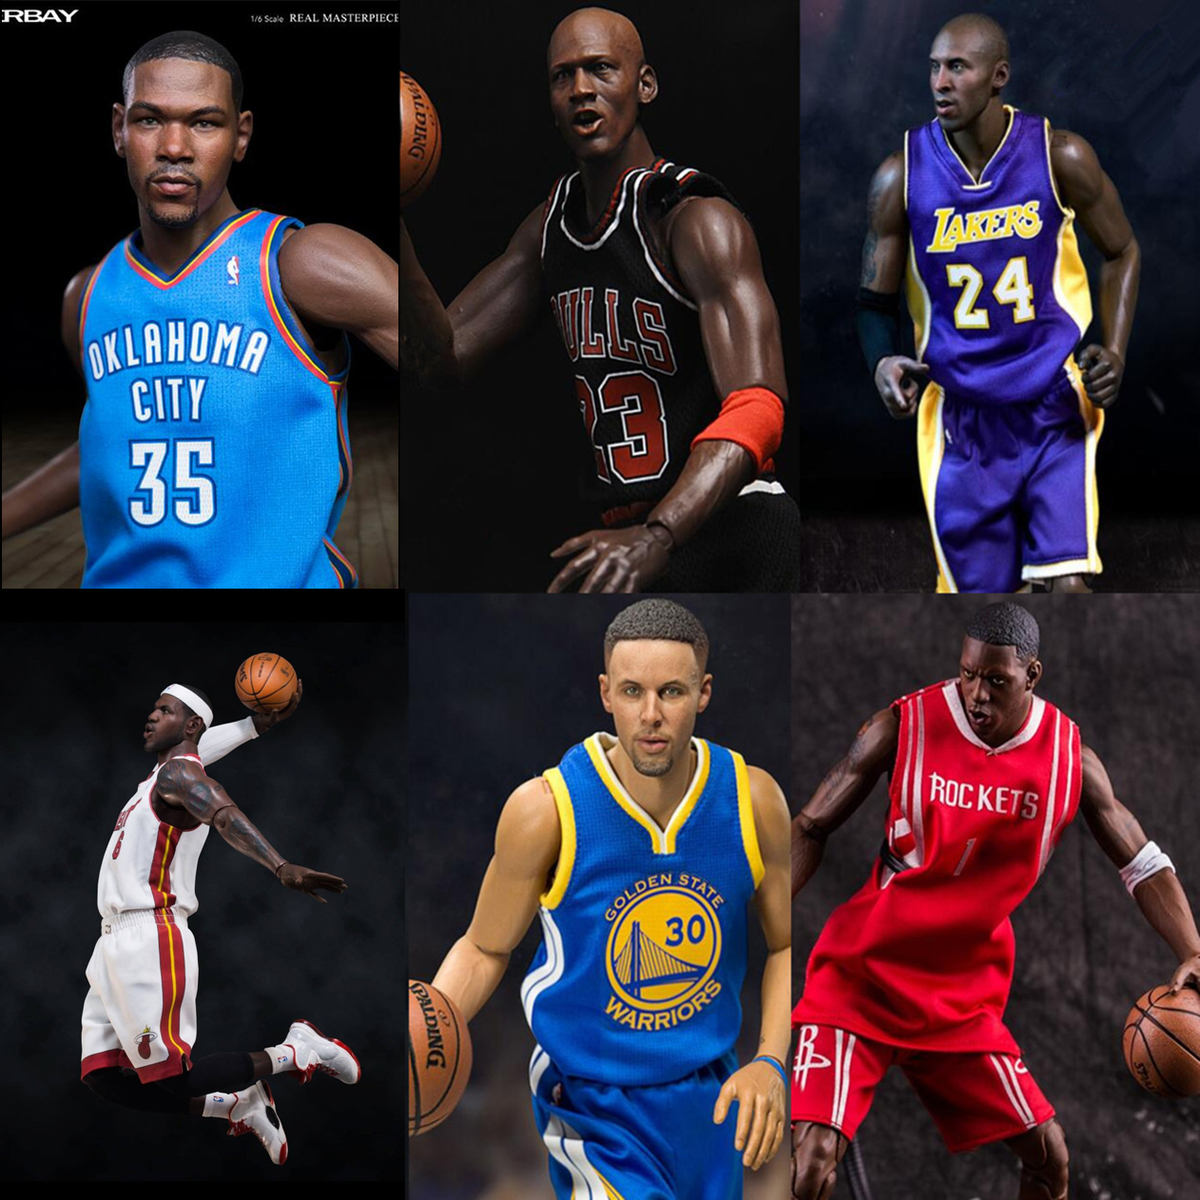 Nba Basketball Star Stephen Curry, Action Figures, 30 Cm High Toys Model For Sport, Lovers Collection фанатская атрибутика nike curry nba